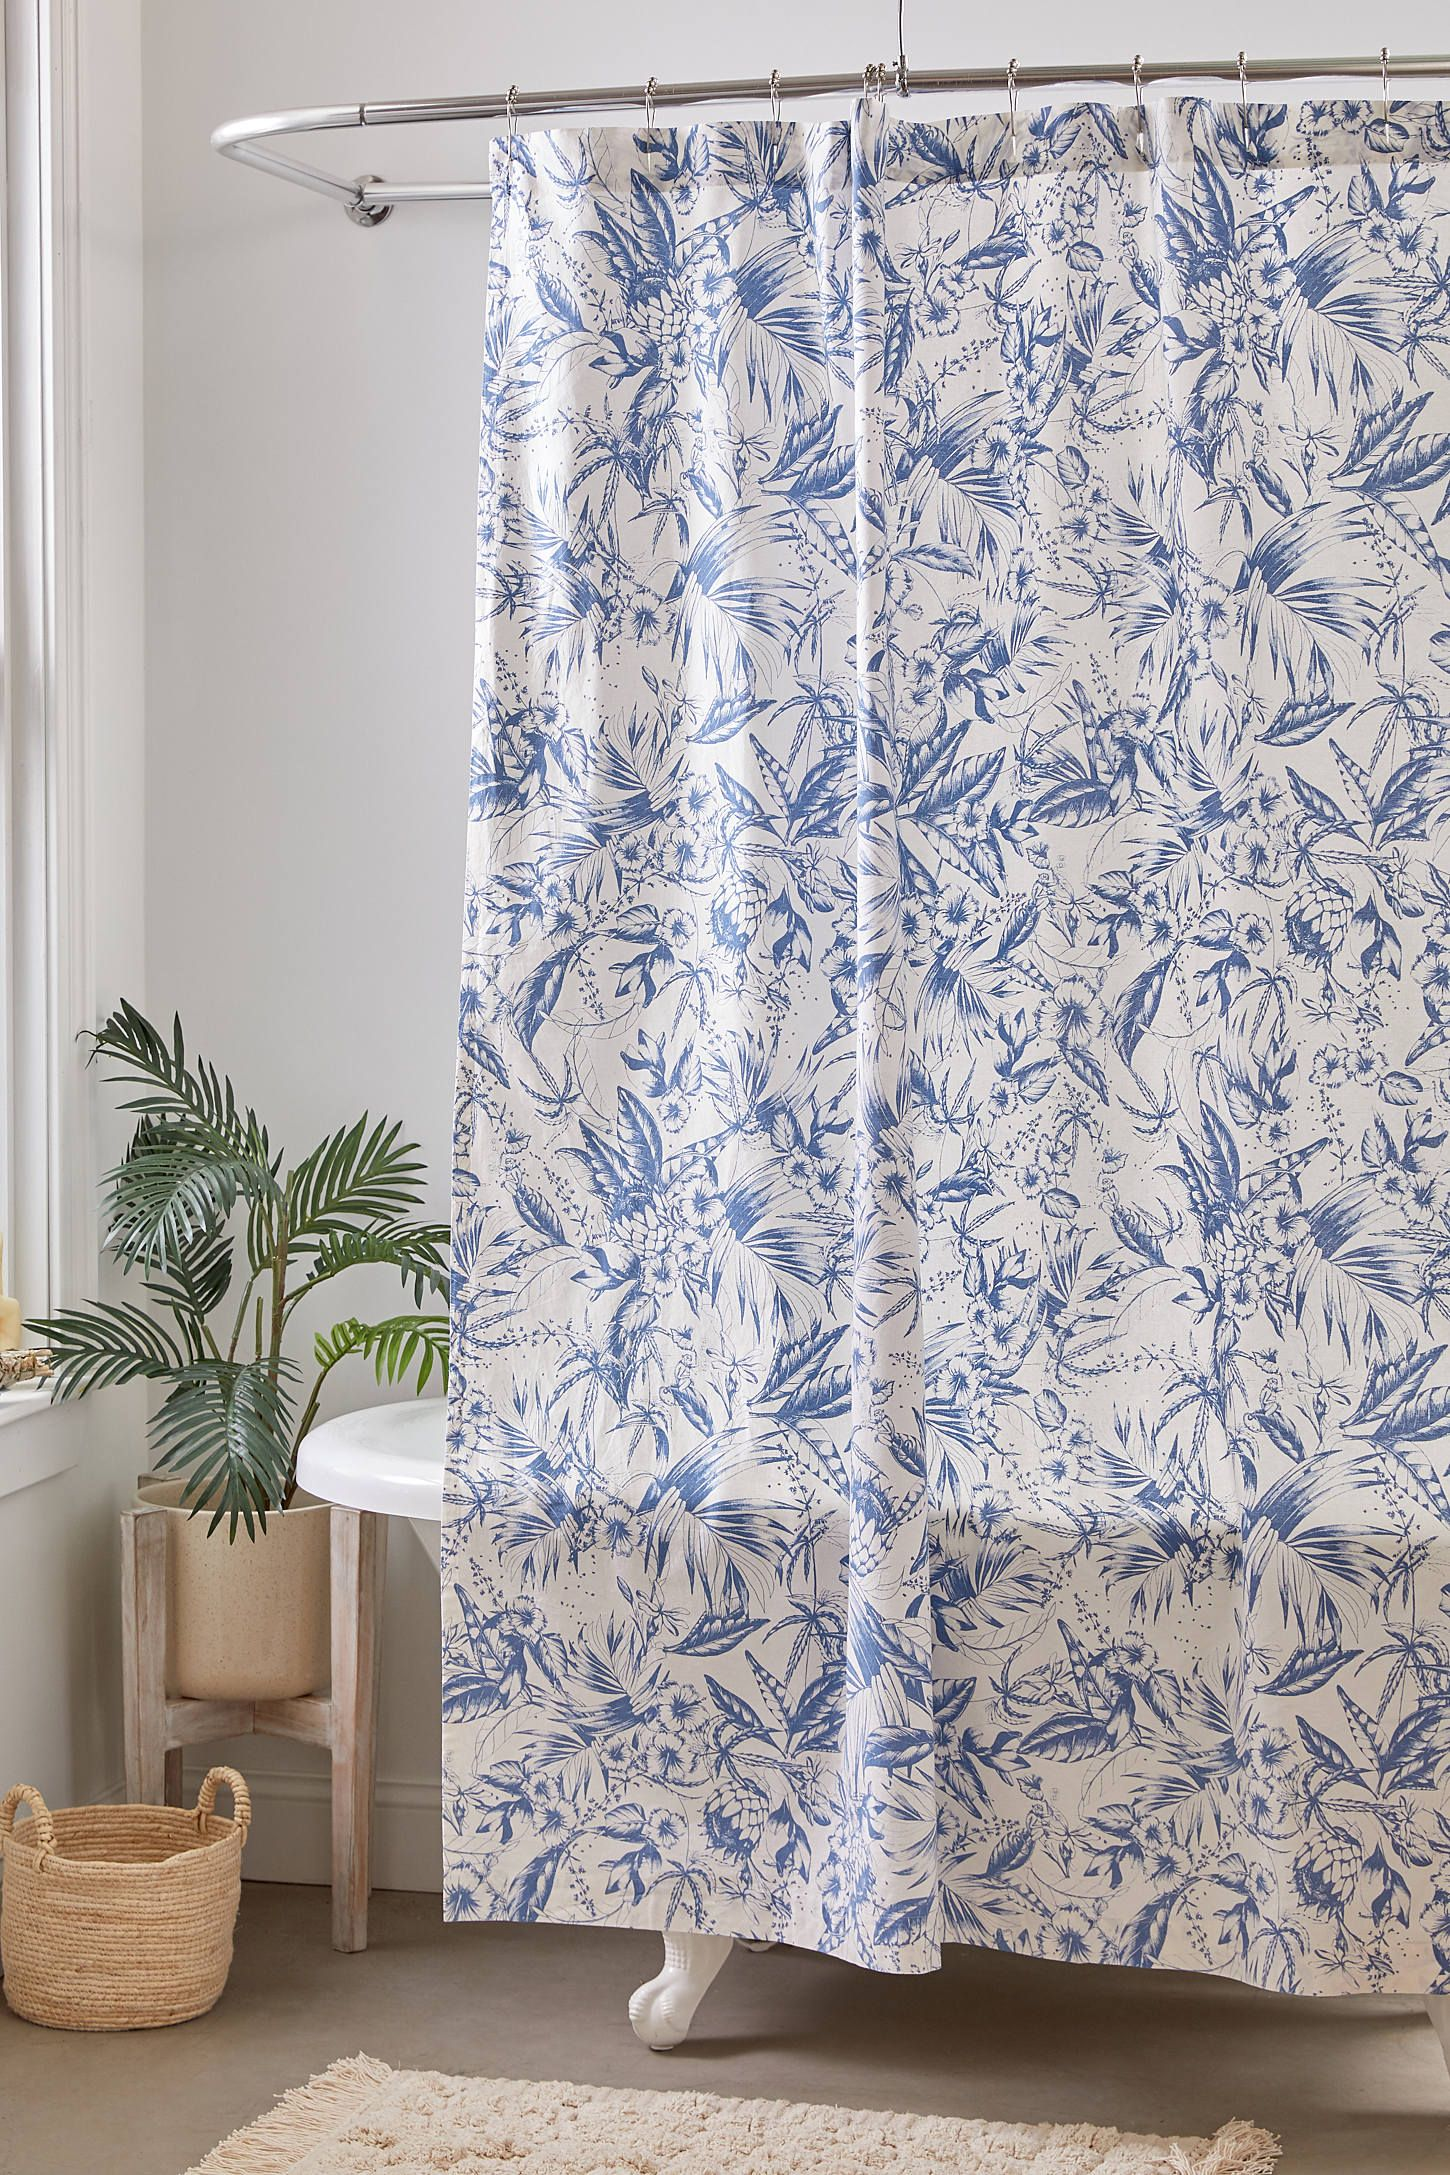 High Times Toile Shower Curtain Urban Outfitters Curtains Blue